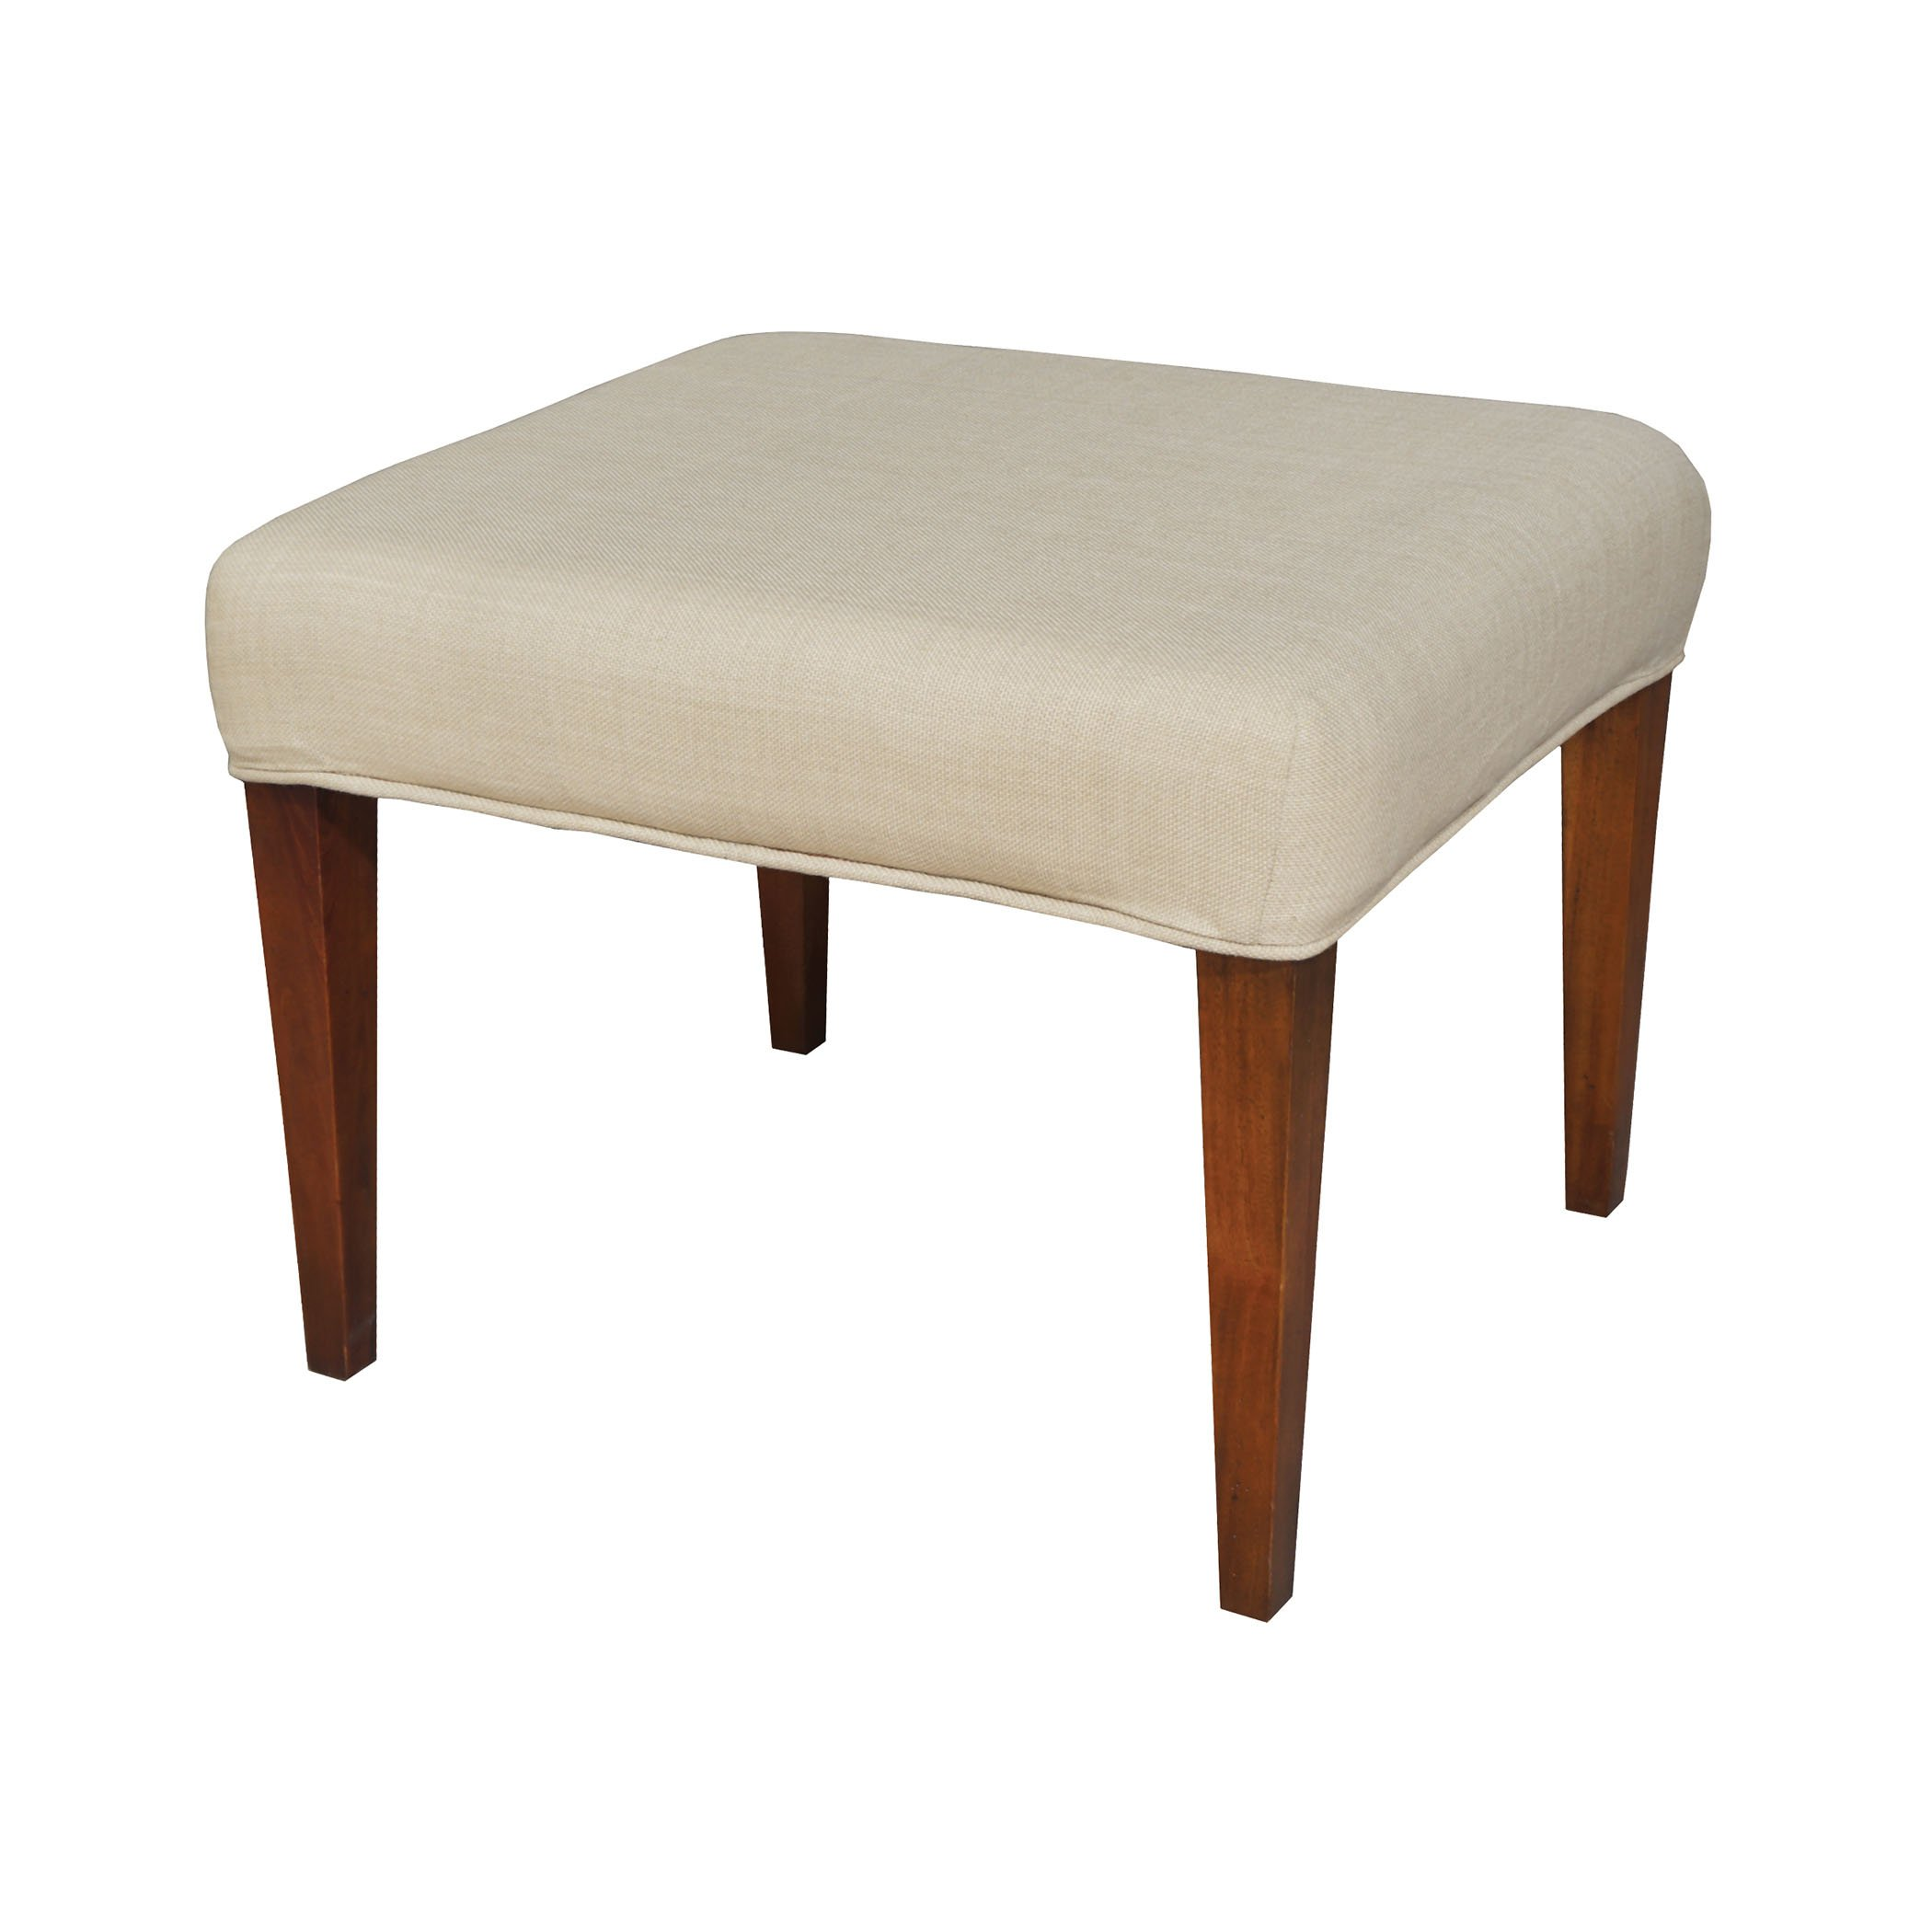 Couture Covers Single Bench Cover - Light Cream by AR Lighting